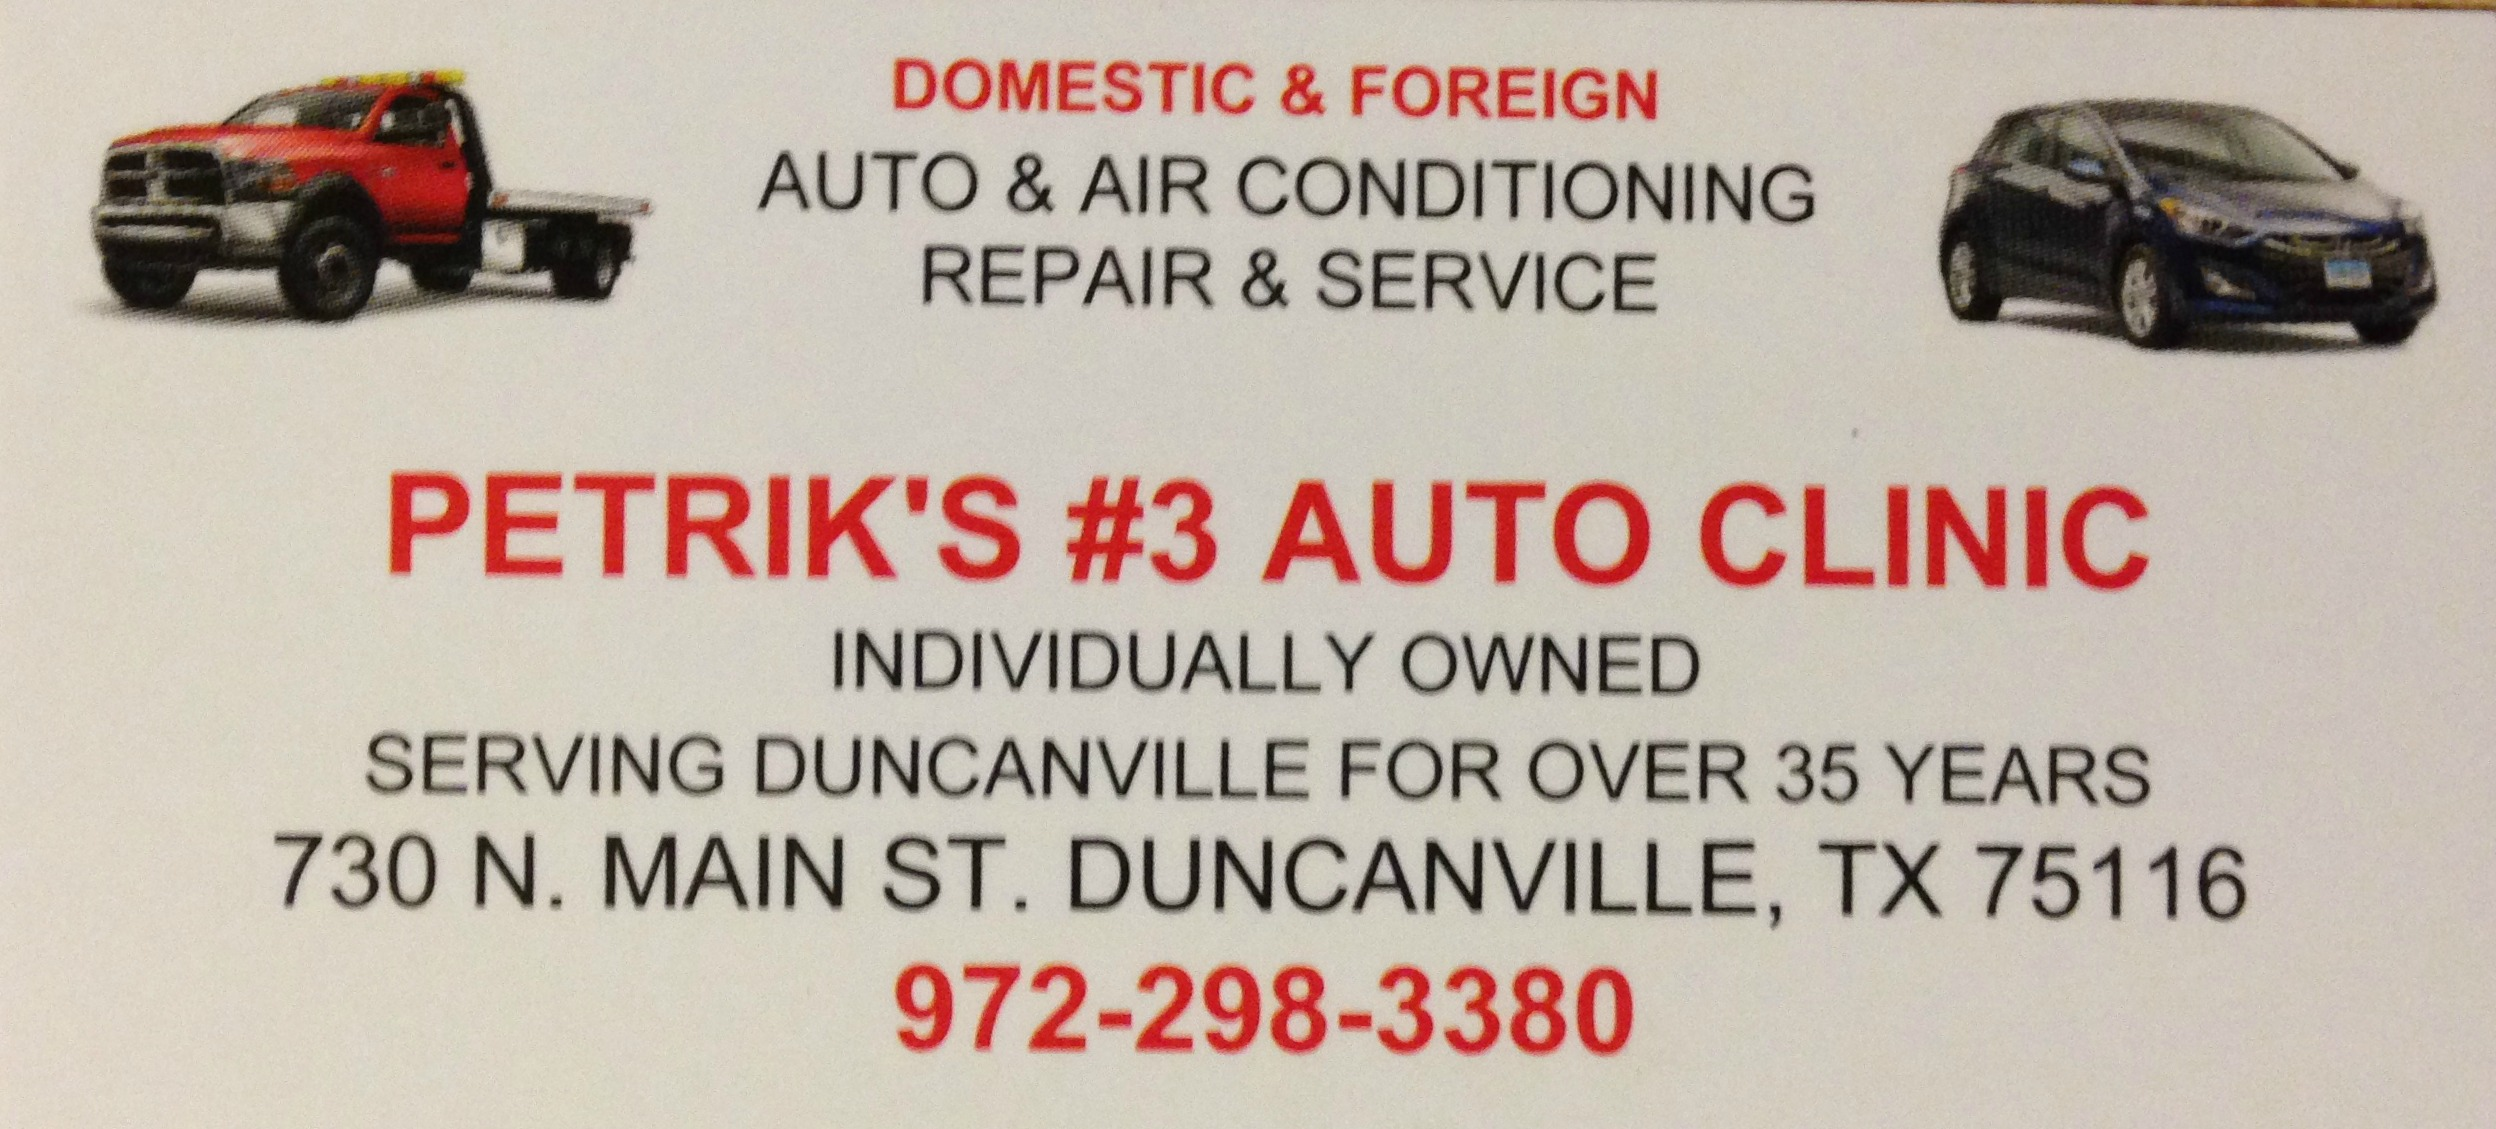 Click Here For Petrik's #3 Auto Clinic